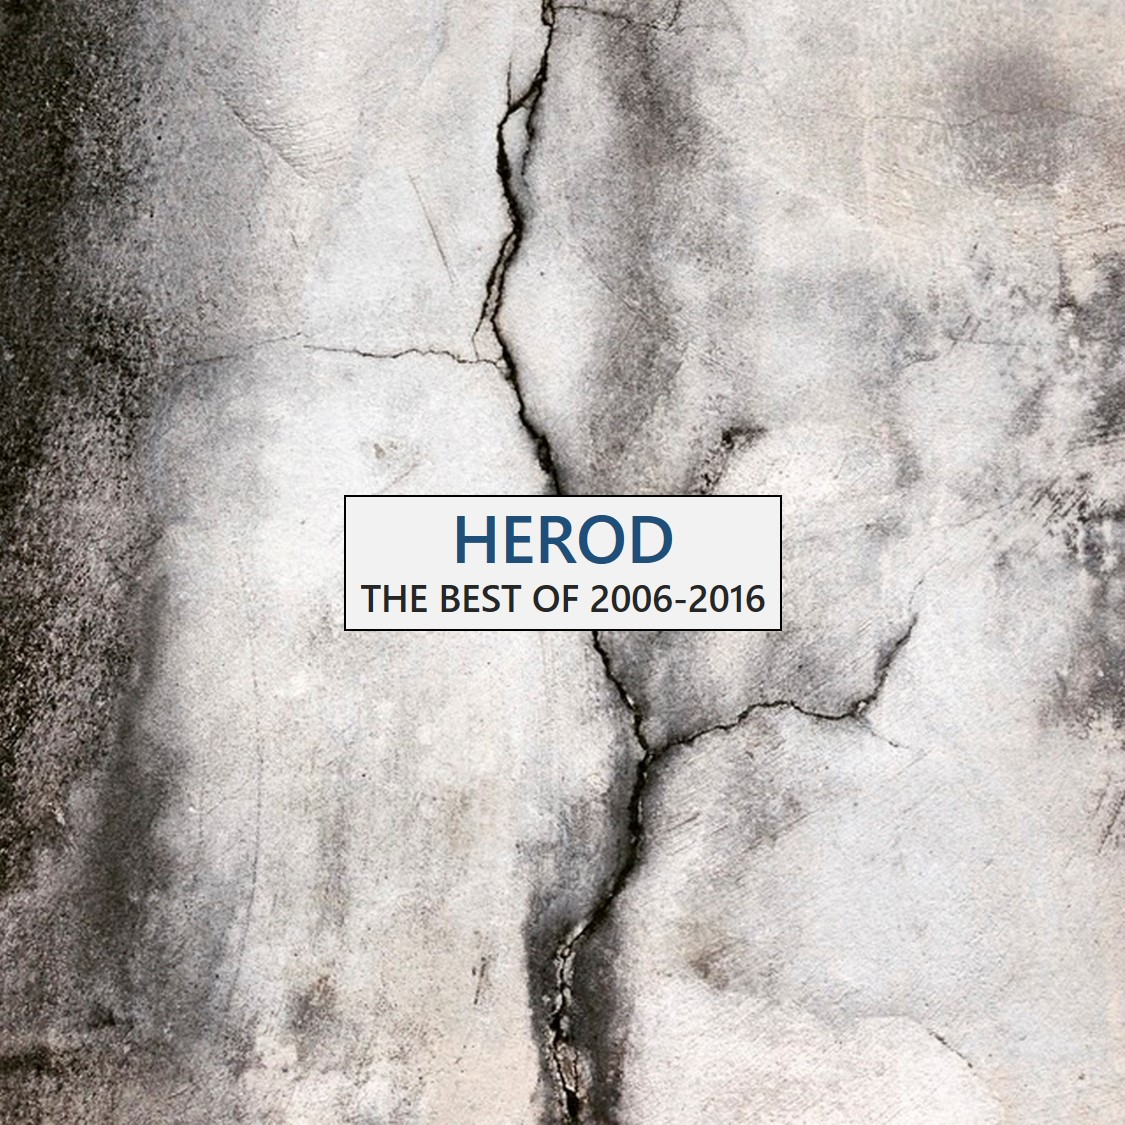 HEROD – The Best of 2006-2016 / The Rest of 2006-2016 (2016)